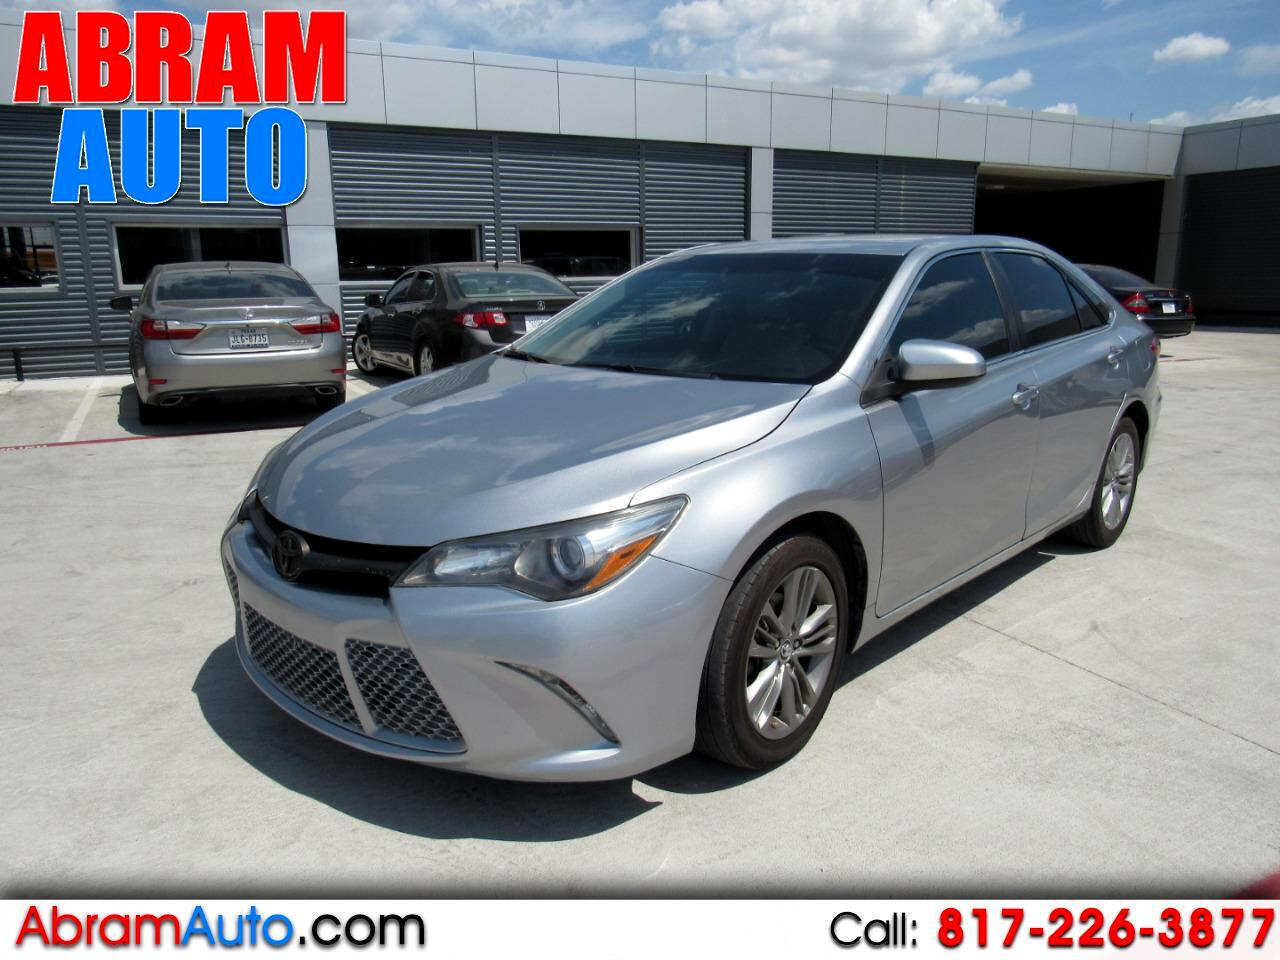 Buy Here Pay Here Arlington >> Buy Here Pay Here 2015 Toyota Camry Se For Sale In Arlington